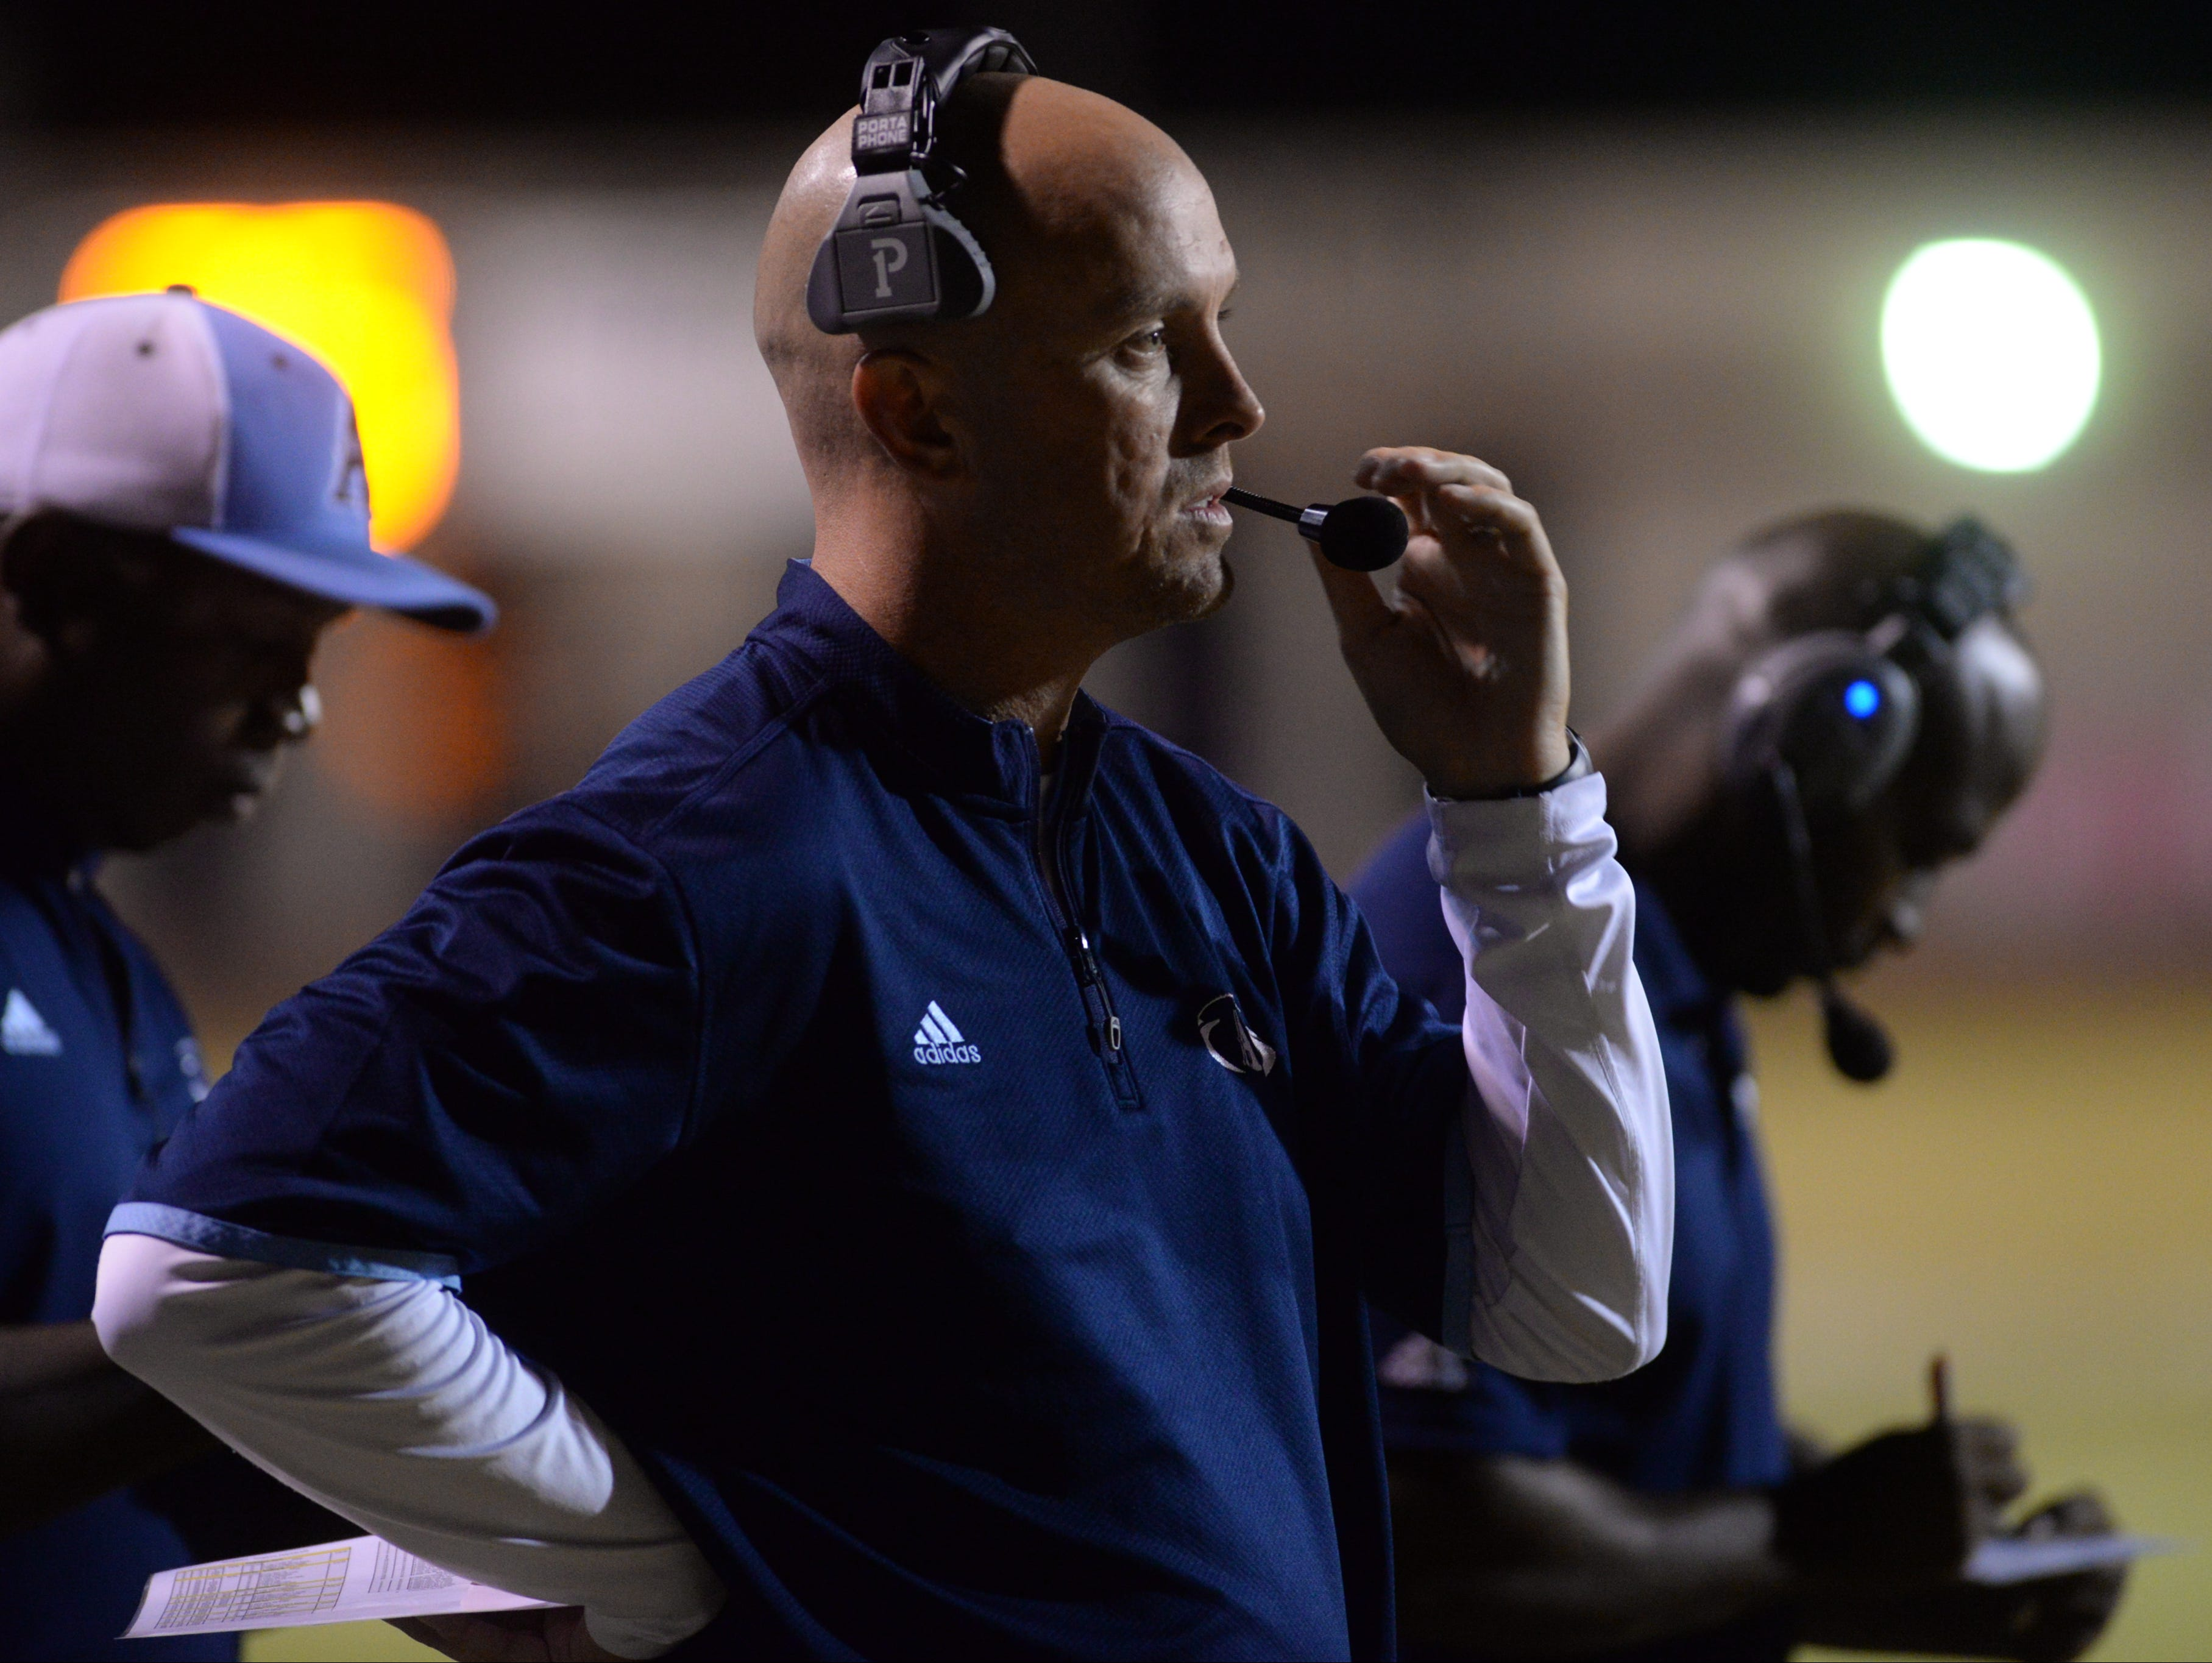 Bo Meeks, head coach of Airline, watches his team from the sideline.